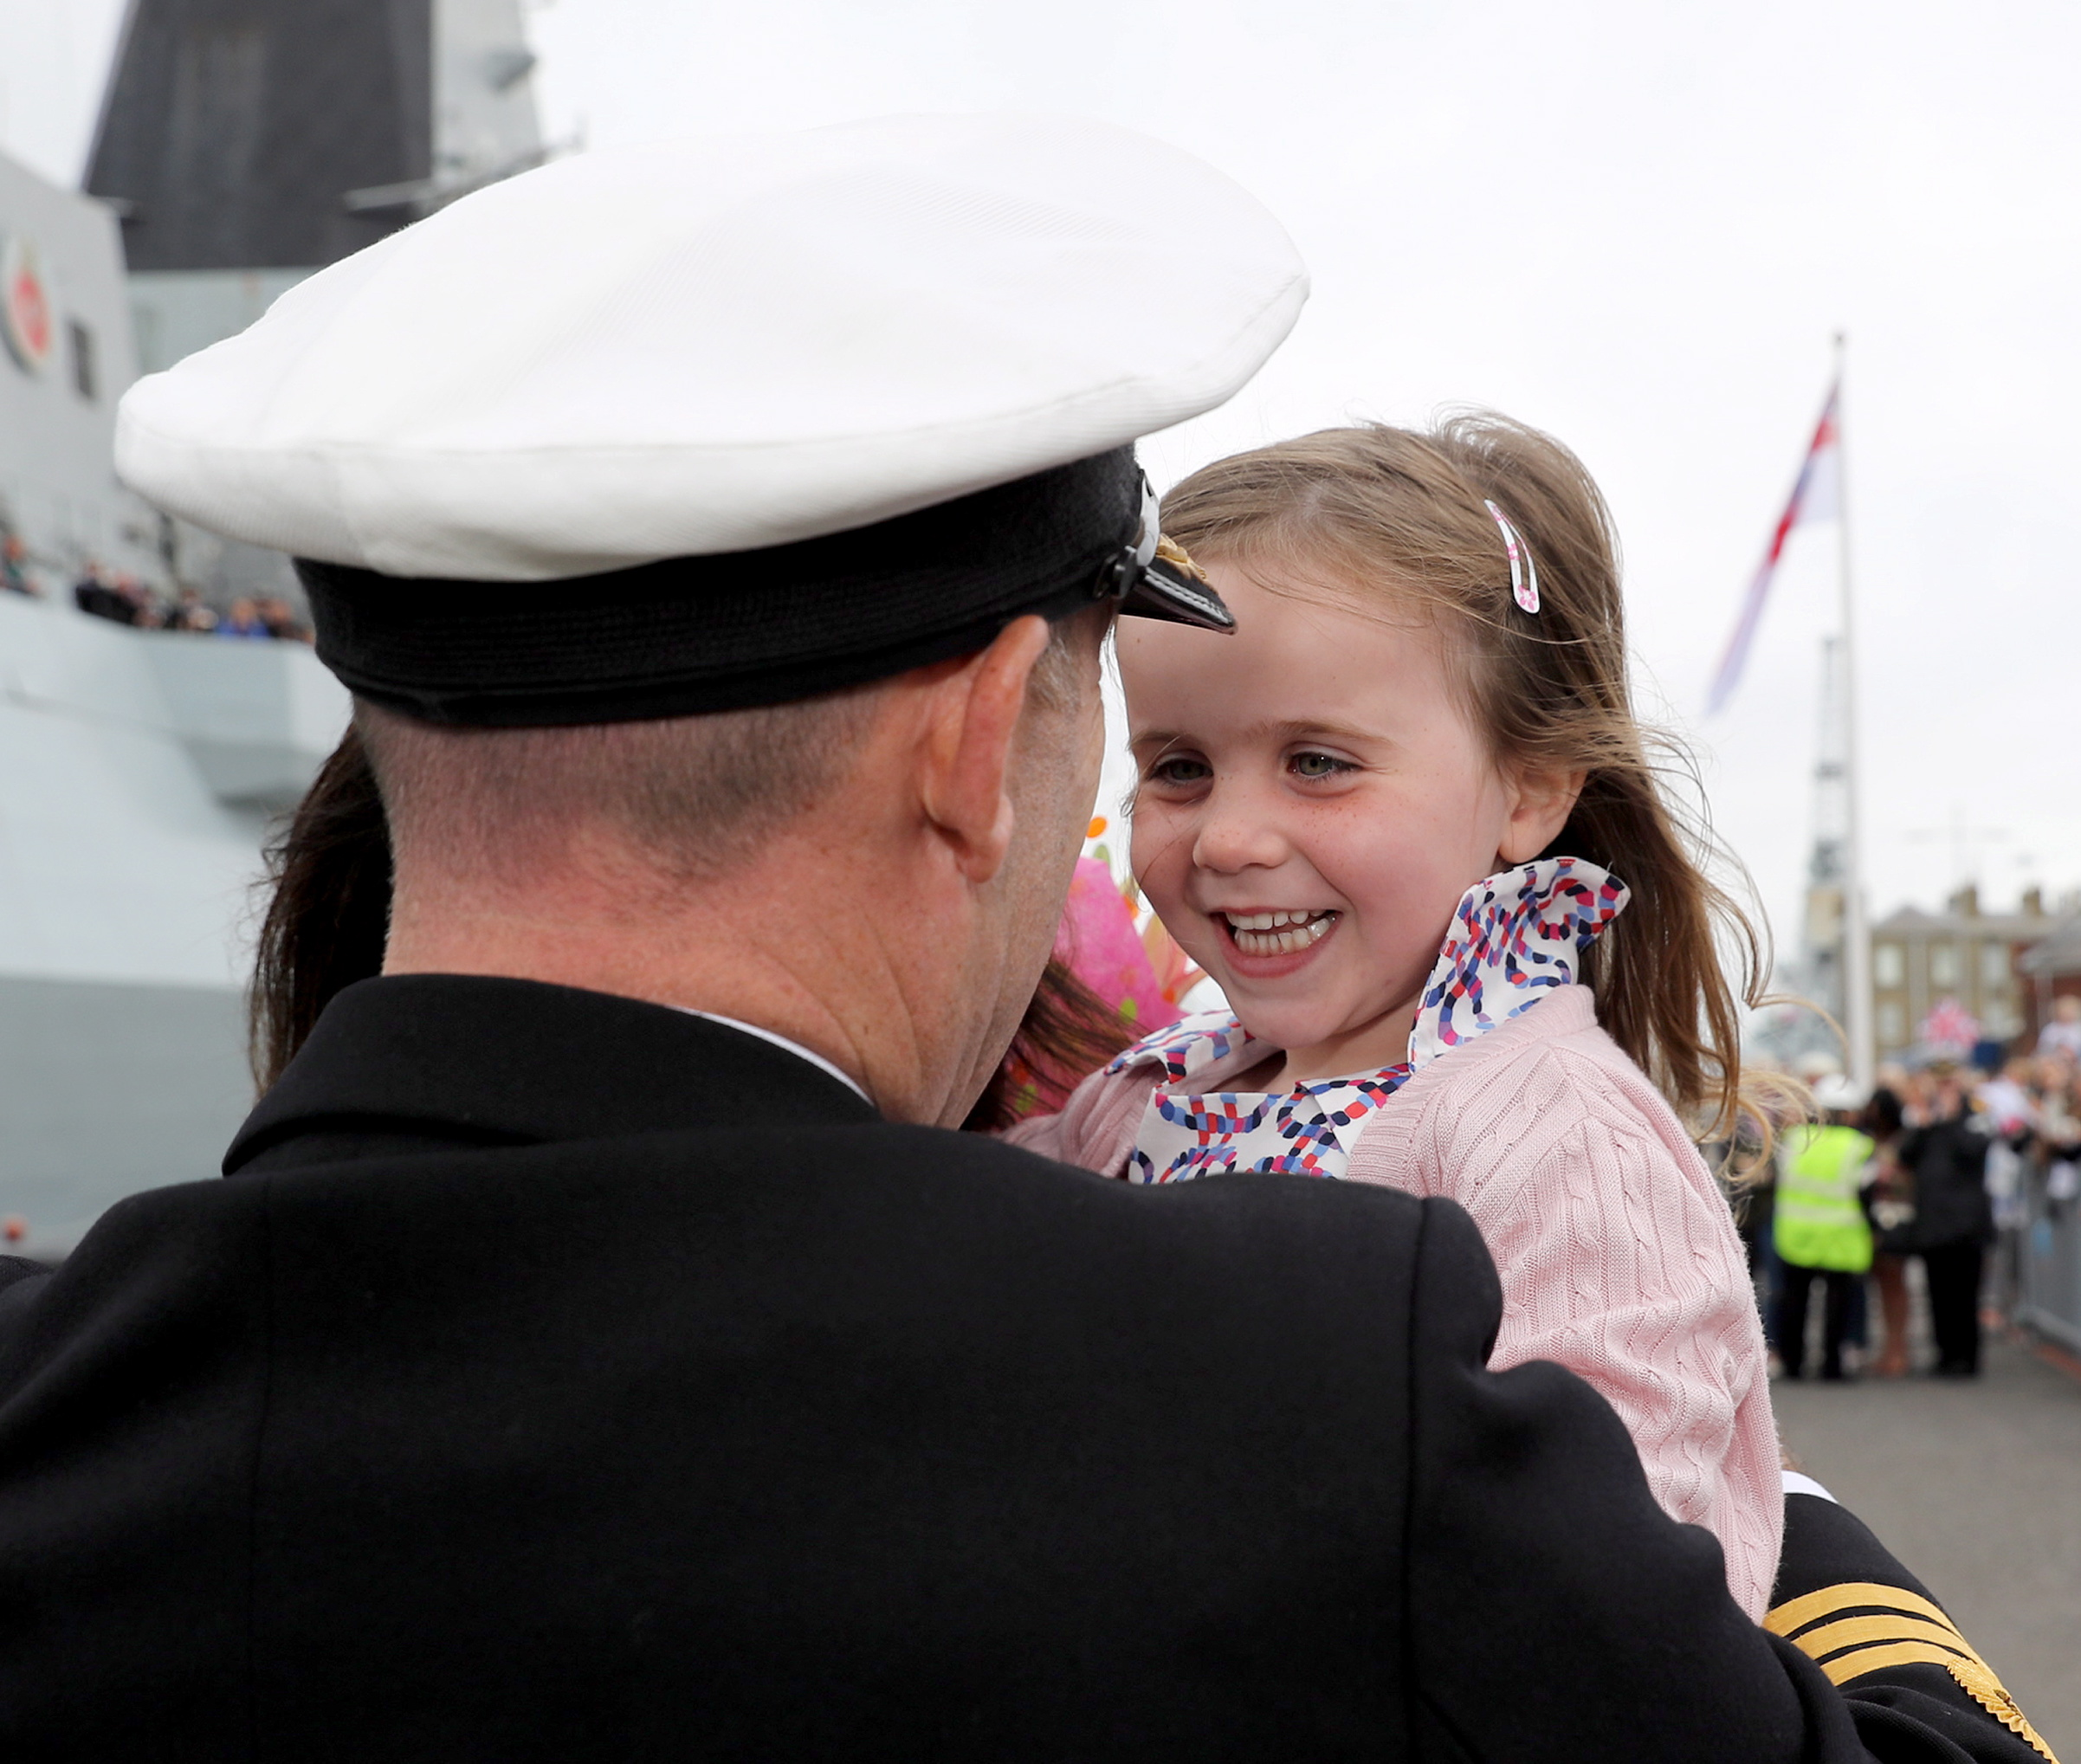 HMS DEFENDER RETURNS HOME  Georginna Higham welcomes home her father the CO of HMS Defender Cdr Stephen Higham.  Portsmouth-based warship HMS Defender returned home today (July 8) from a nine month deployment to the middle east carrying out security operations.  The Band of Her Majesty's Royal Marines Portsmouth performed on the jetty as the crowds eagerly awaitied the return of sailors on board.  Hundreds of proud family and friends waved and cheered as the ship came alongside, clearly delighted to welcome their loved ones home.  Image: LPhot Kyle Heller Consent held at FRPU(E)